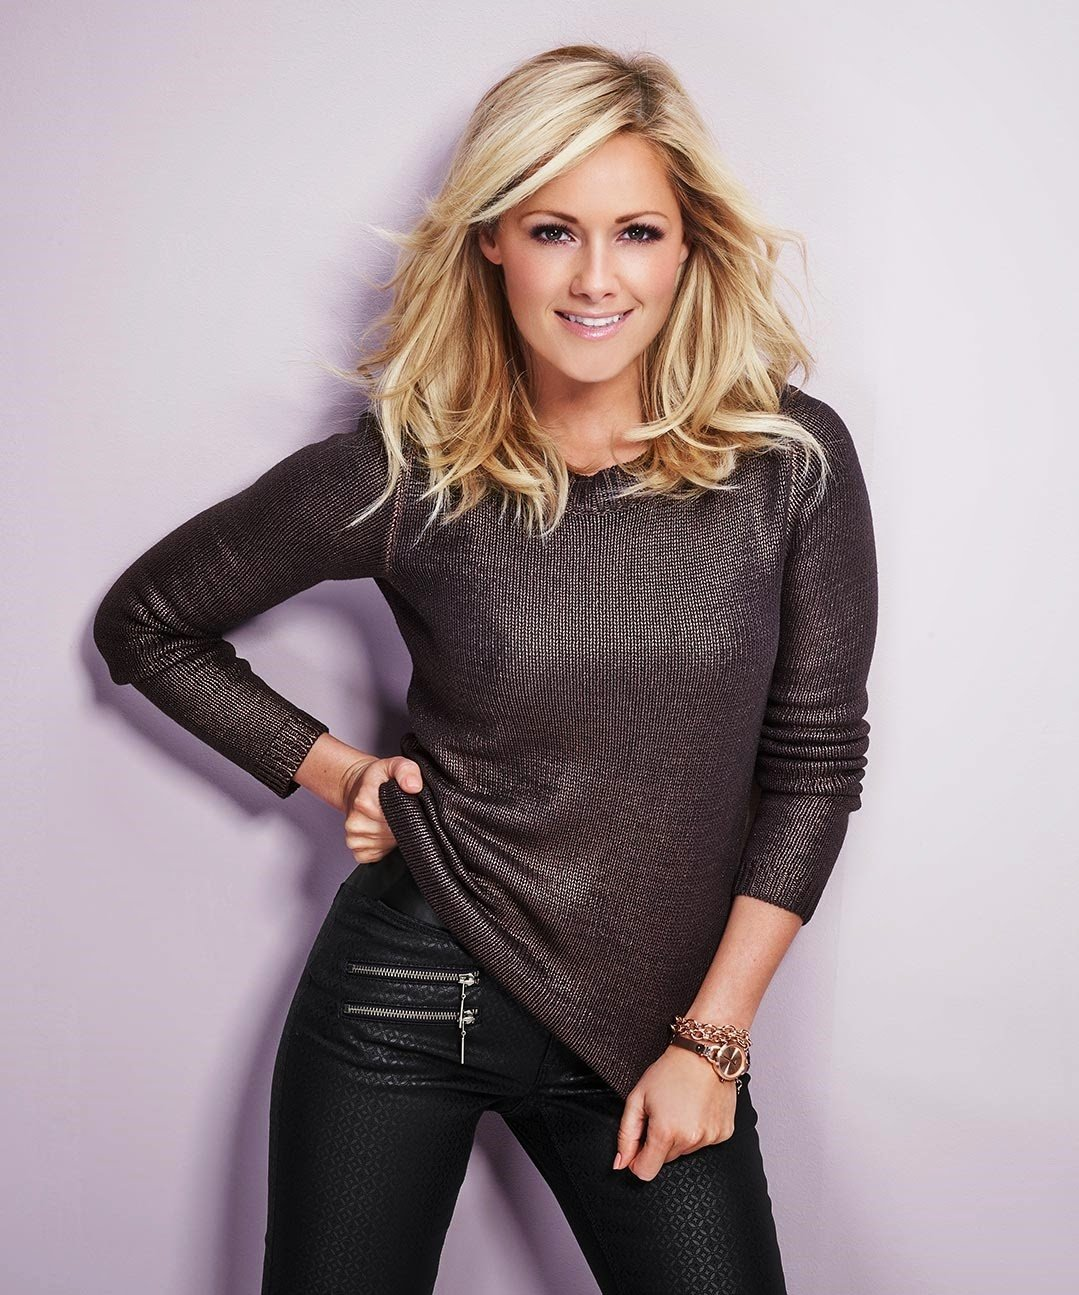 helene fischer pictures metrolyrics. Black Bedroom Furniture Sets. Home Design Ideas